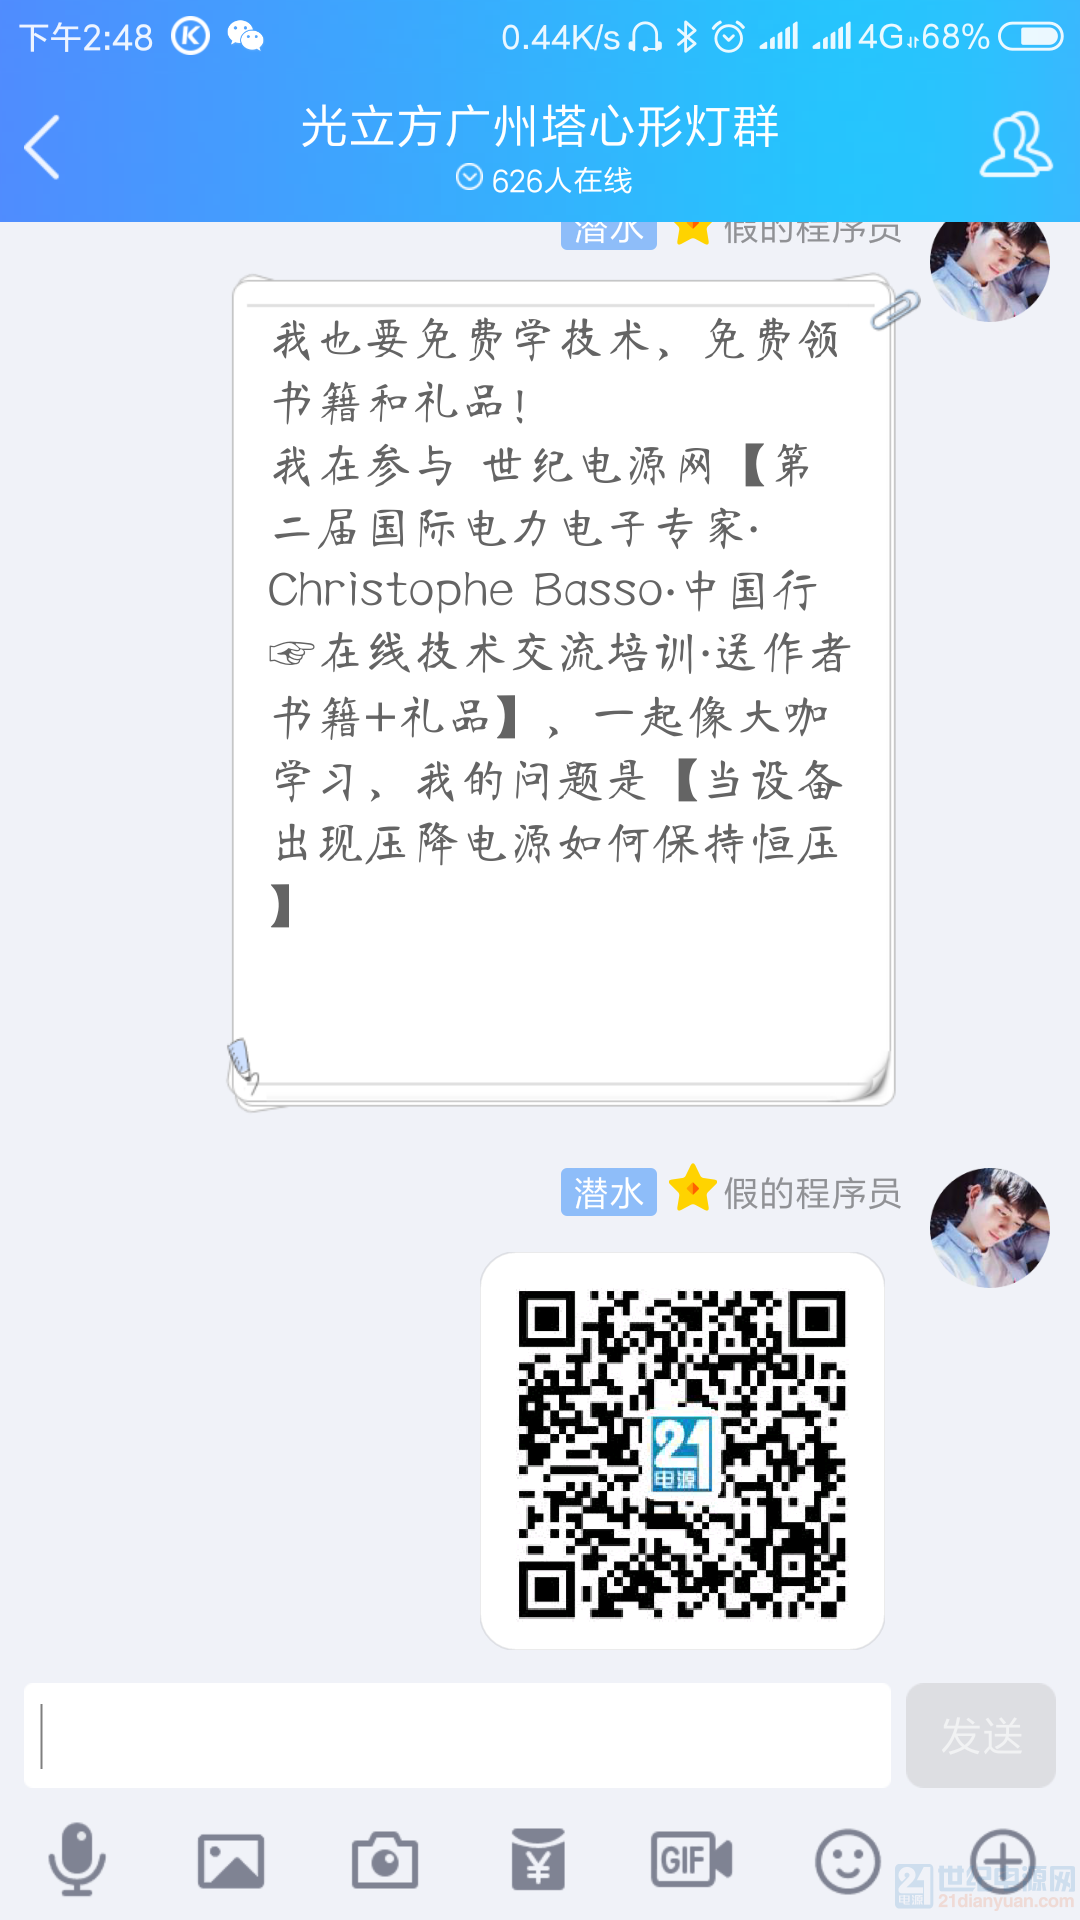 Screenshot_2018-10-12-14-48-40-062_com.tencent.mobileqq.png